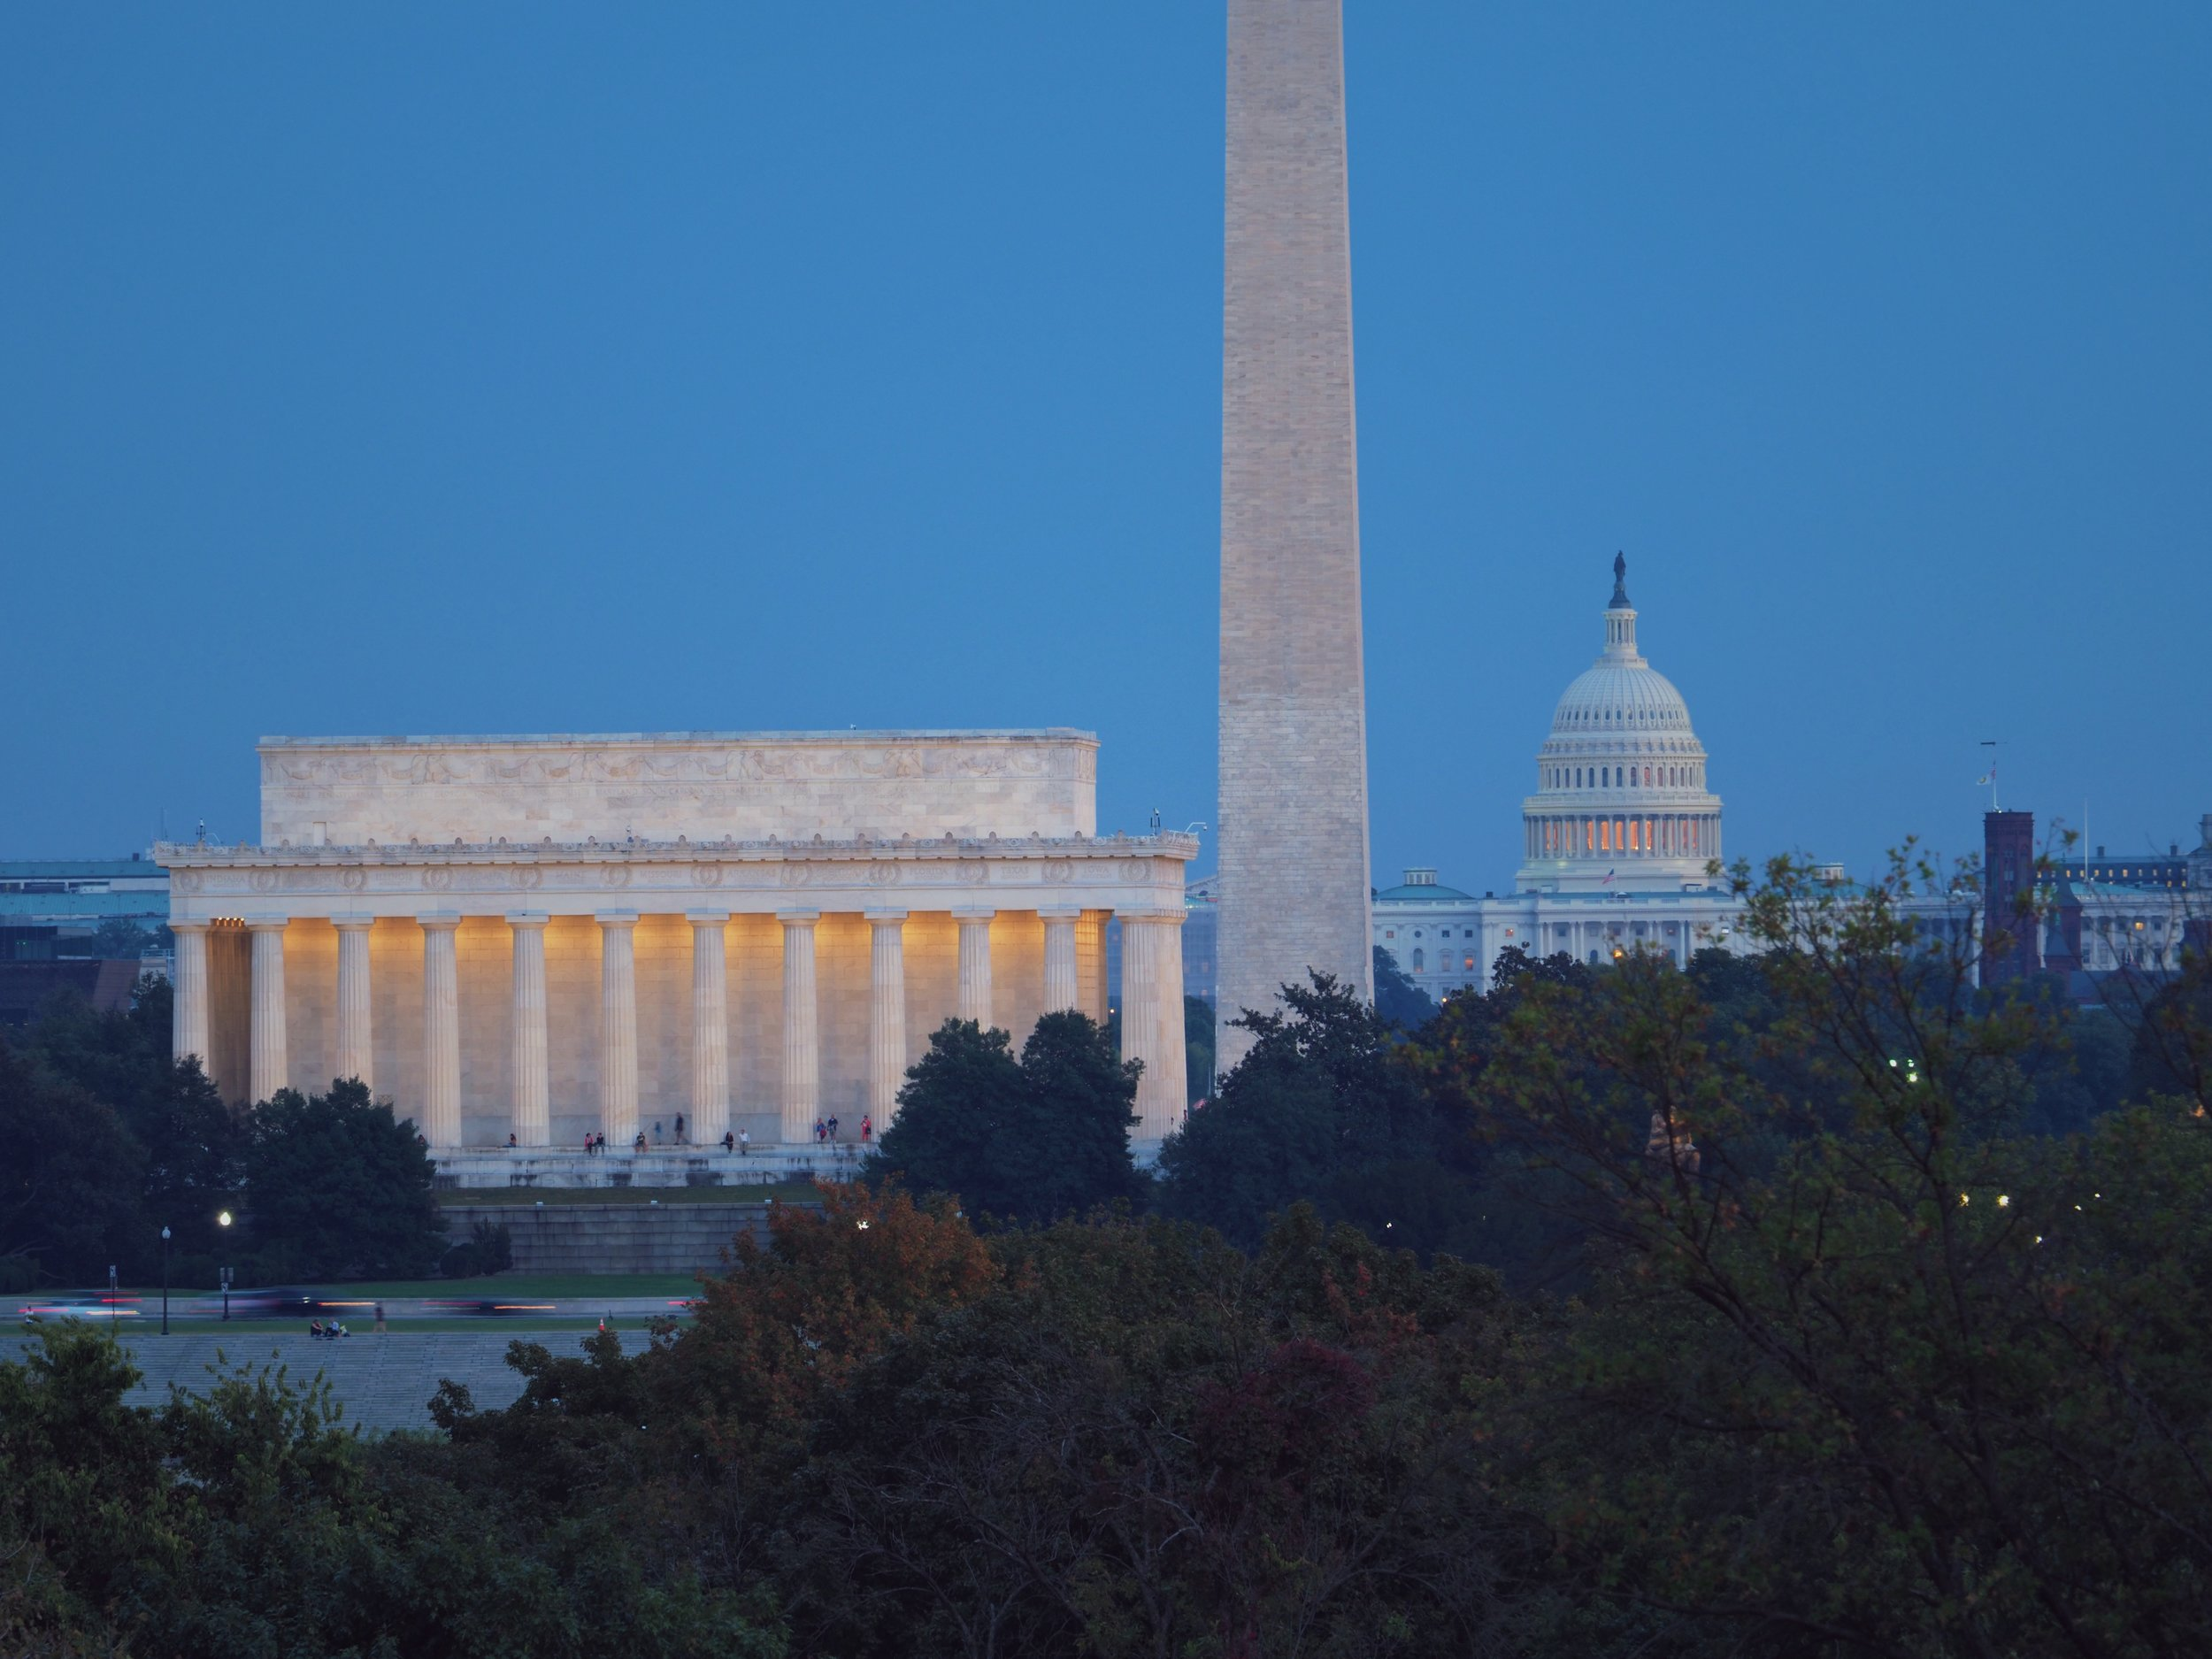 A long-ish exposure of the Lincoln Memorial, base of the Washington Monument, and U.S. Capitol Building.